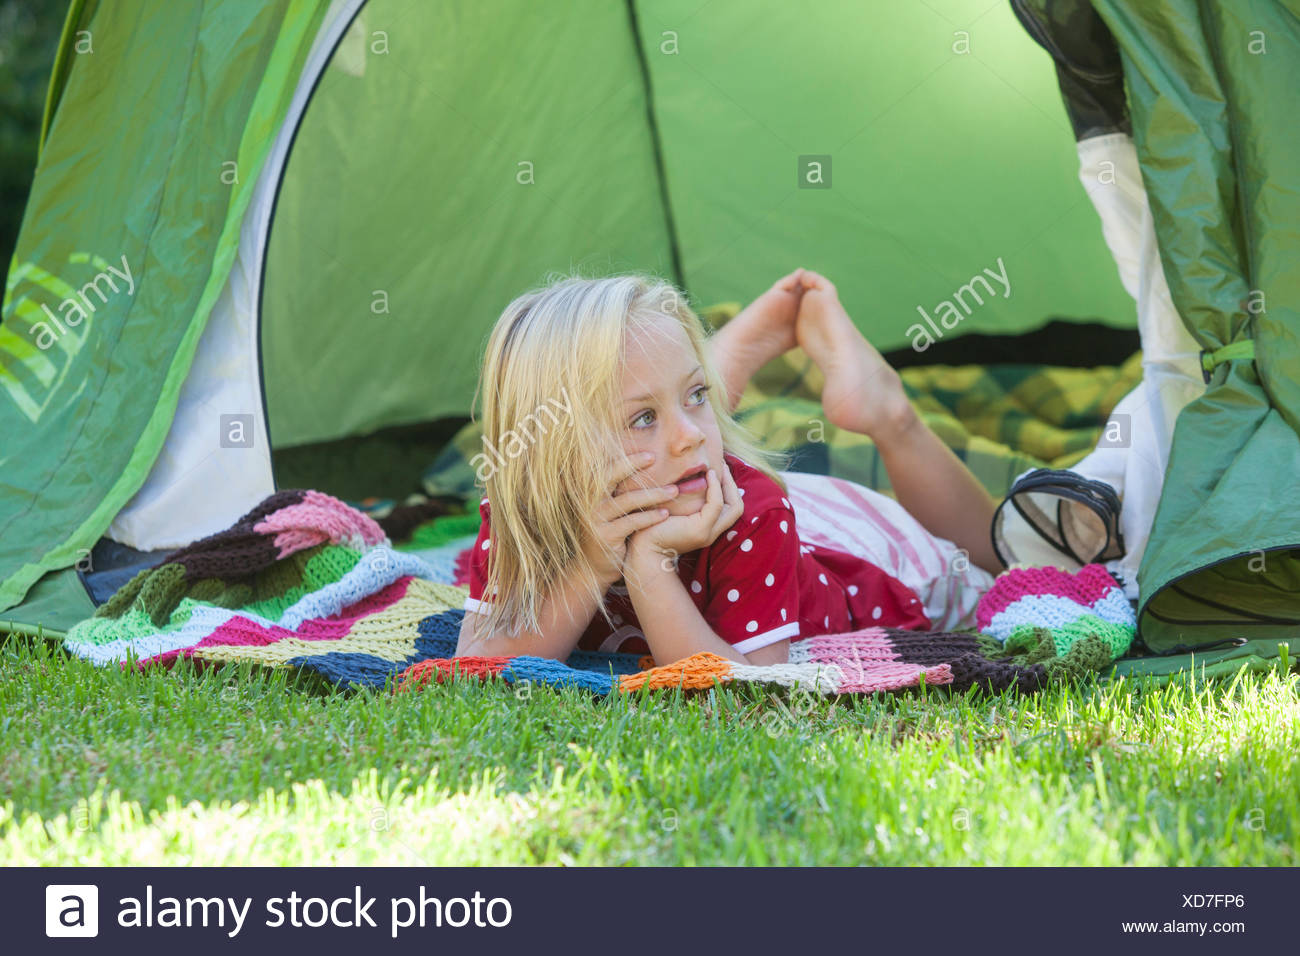 Portrait of girl daydreaming in garden tent - Stock Image